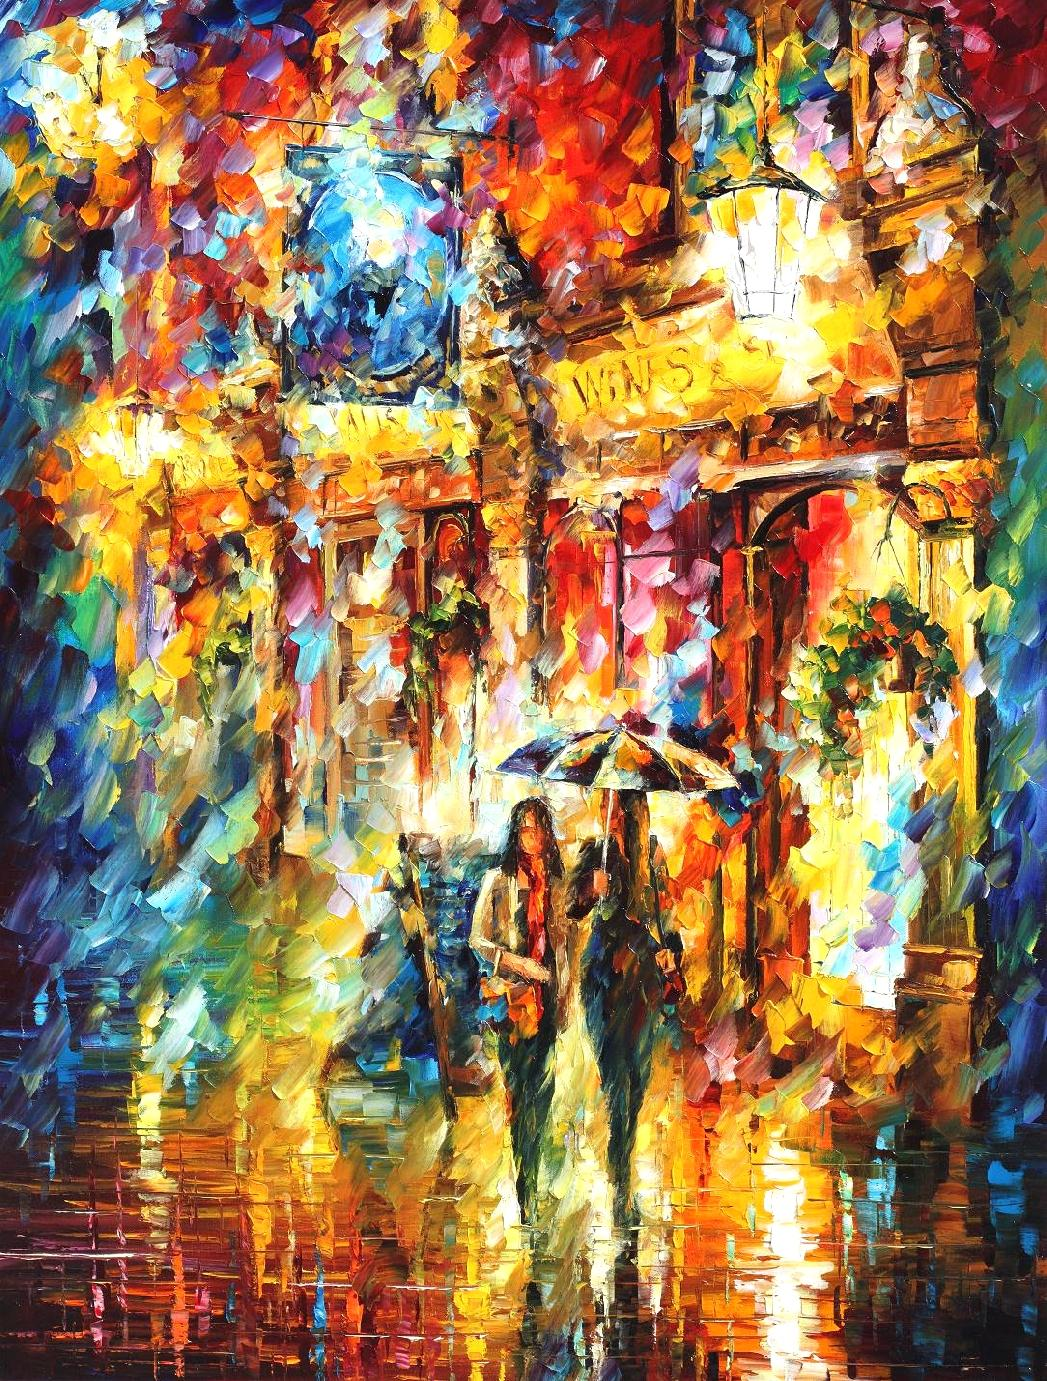 Best friends in the city original oil painting on canvas by leonid afremov size